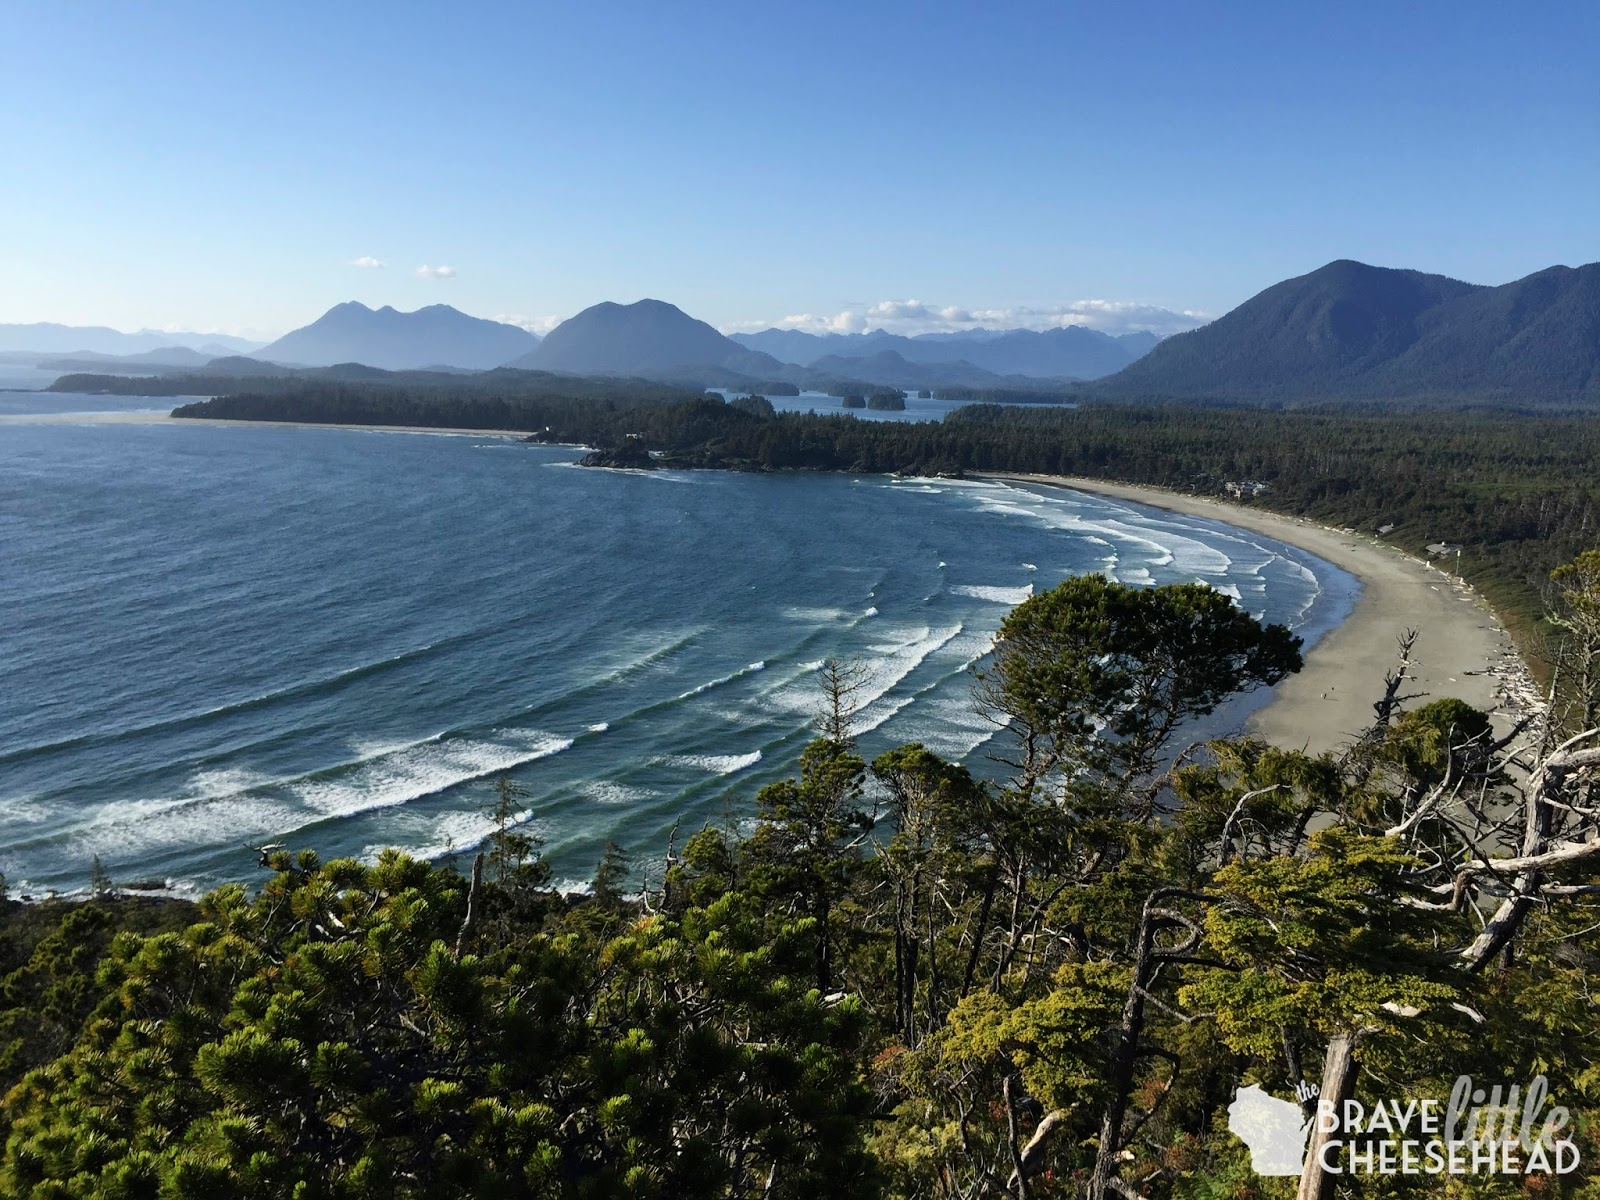 6 Things You Must Do in Tofino, BC | The Brave Little Cheesehead at bravelittlecheesehead.com